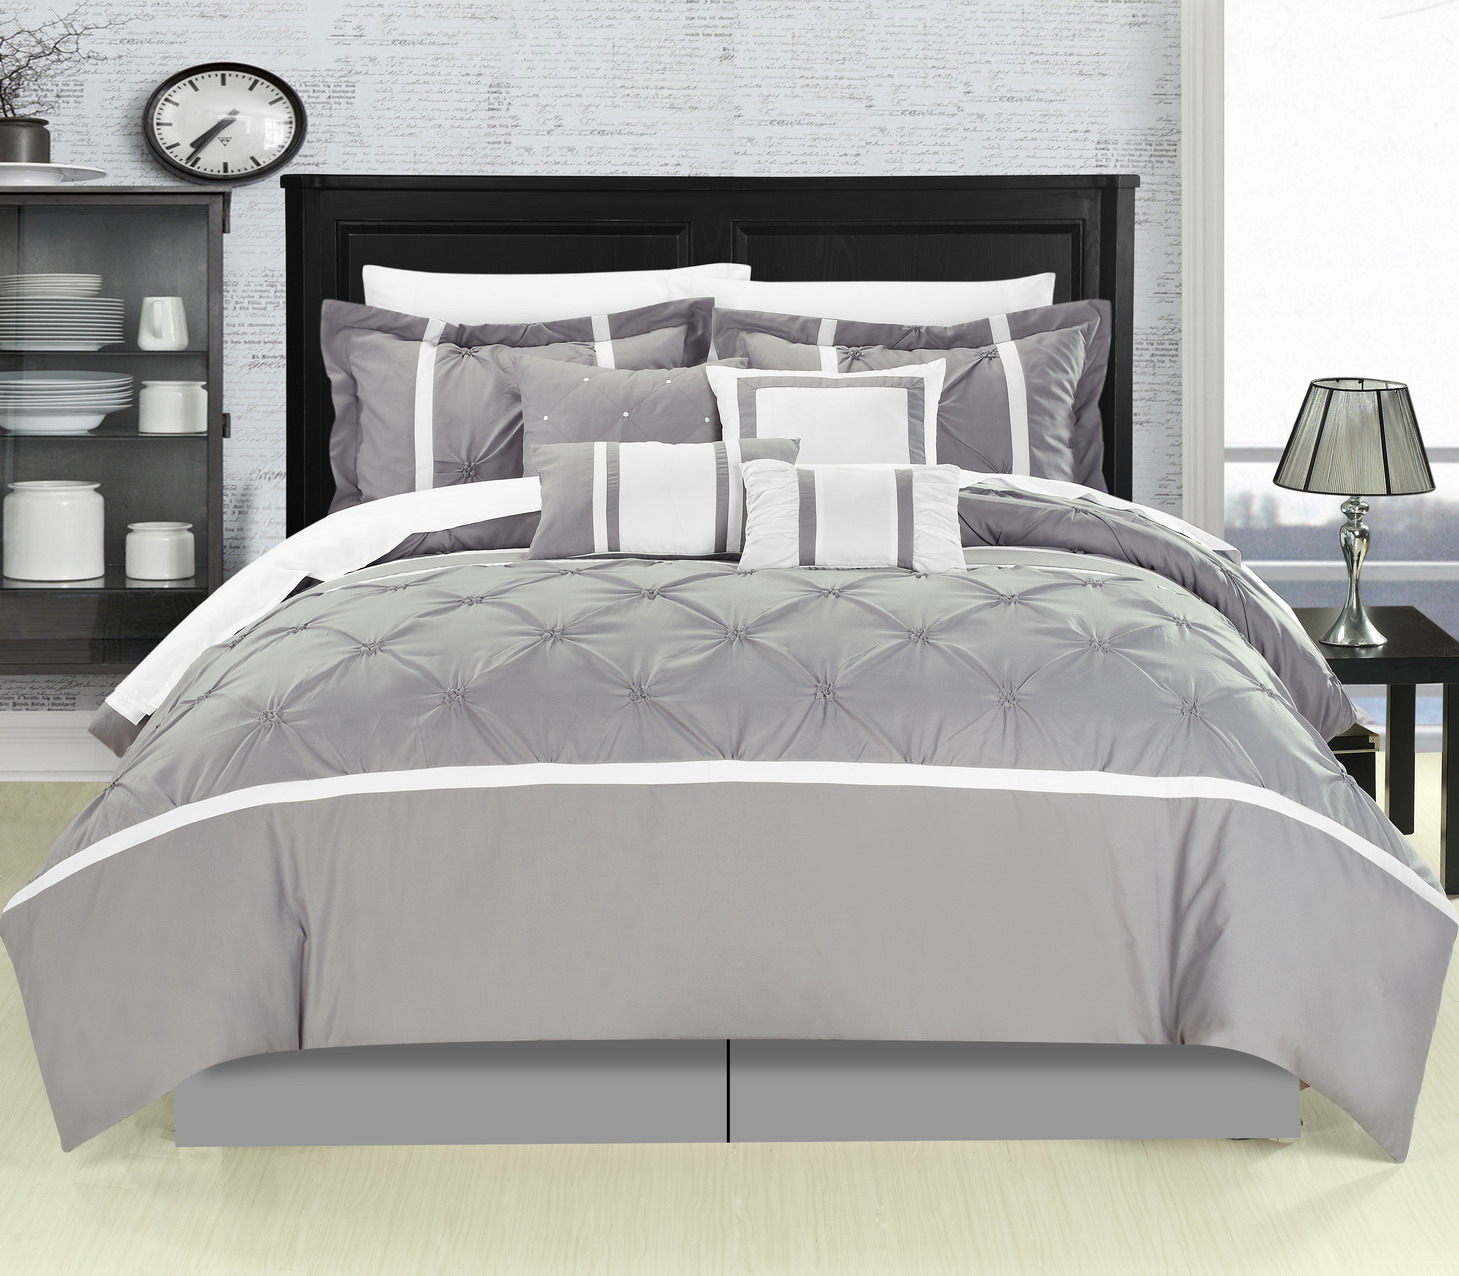 Stay Warm This Winter In Bed — Pillow Talk by Bedding.com